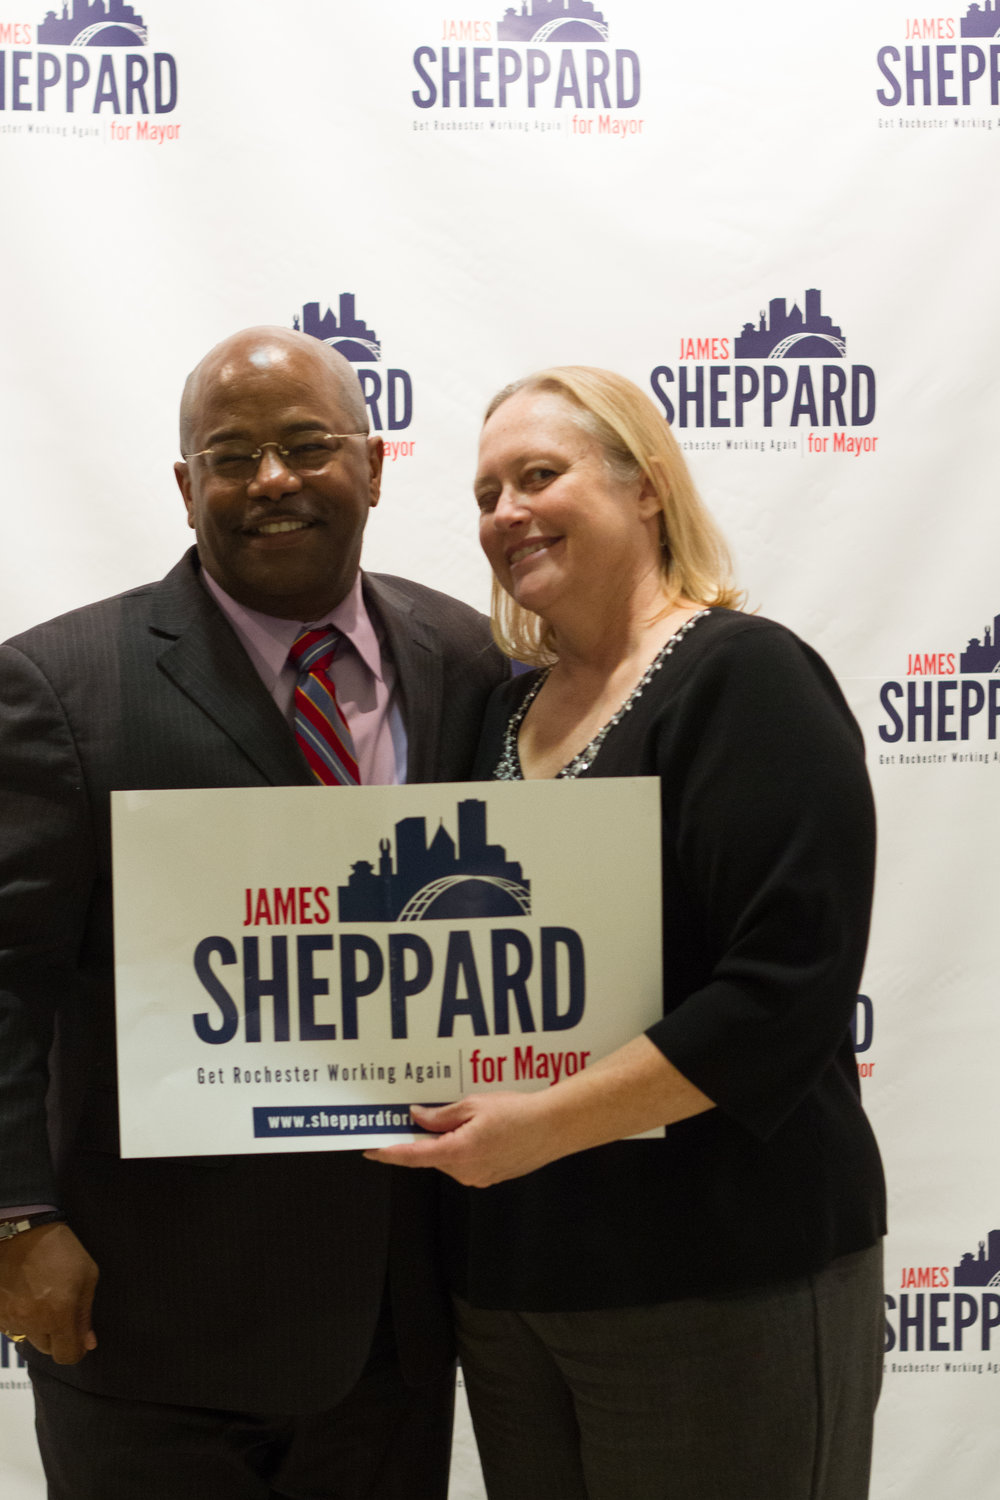 I_Stand_With_Shep_Signs-0014.jpg